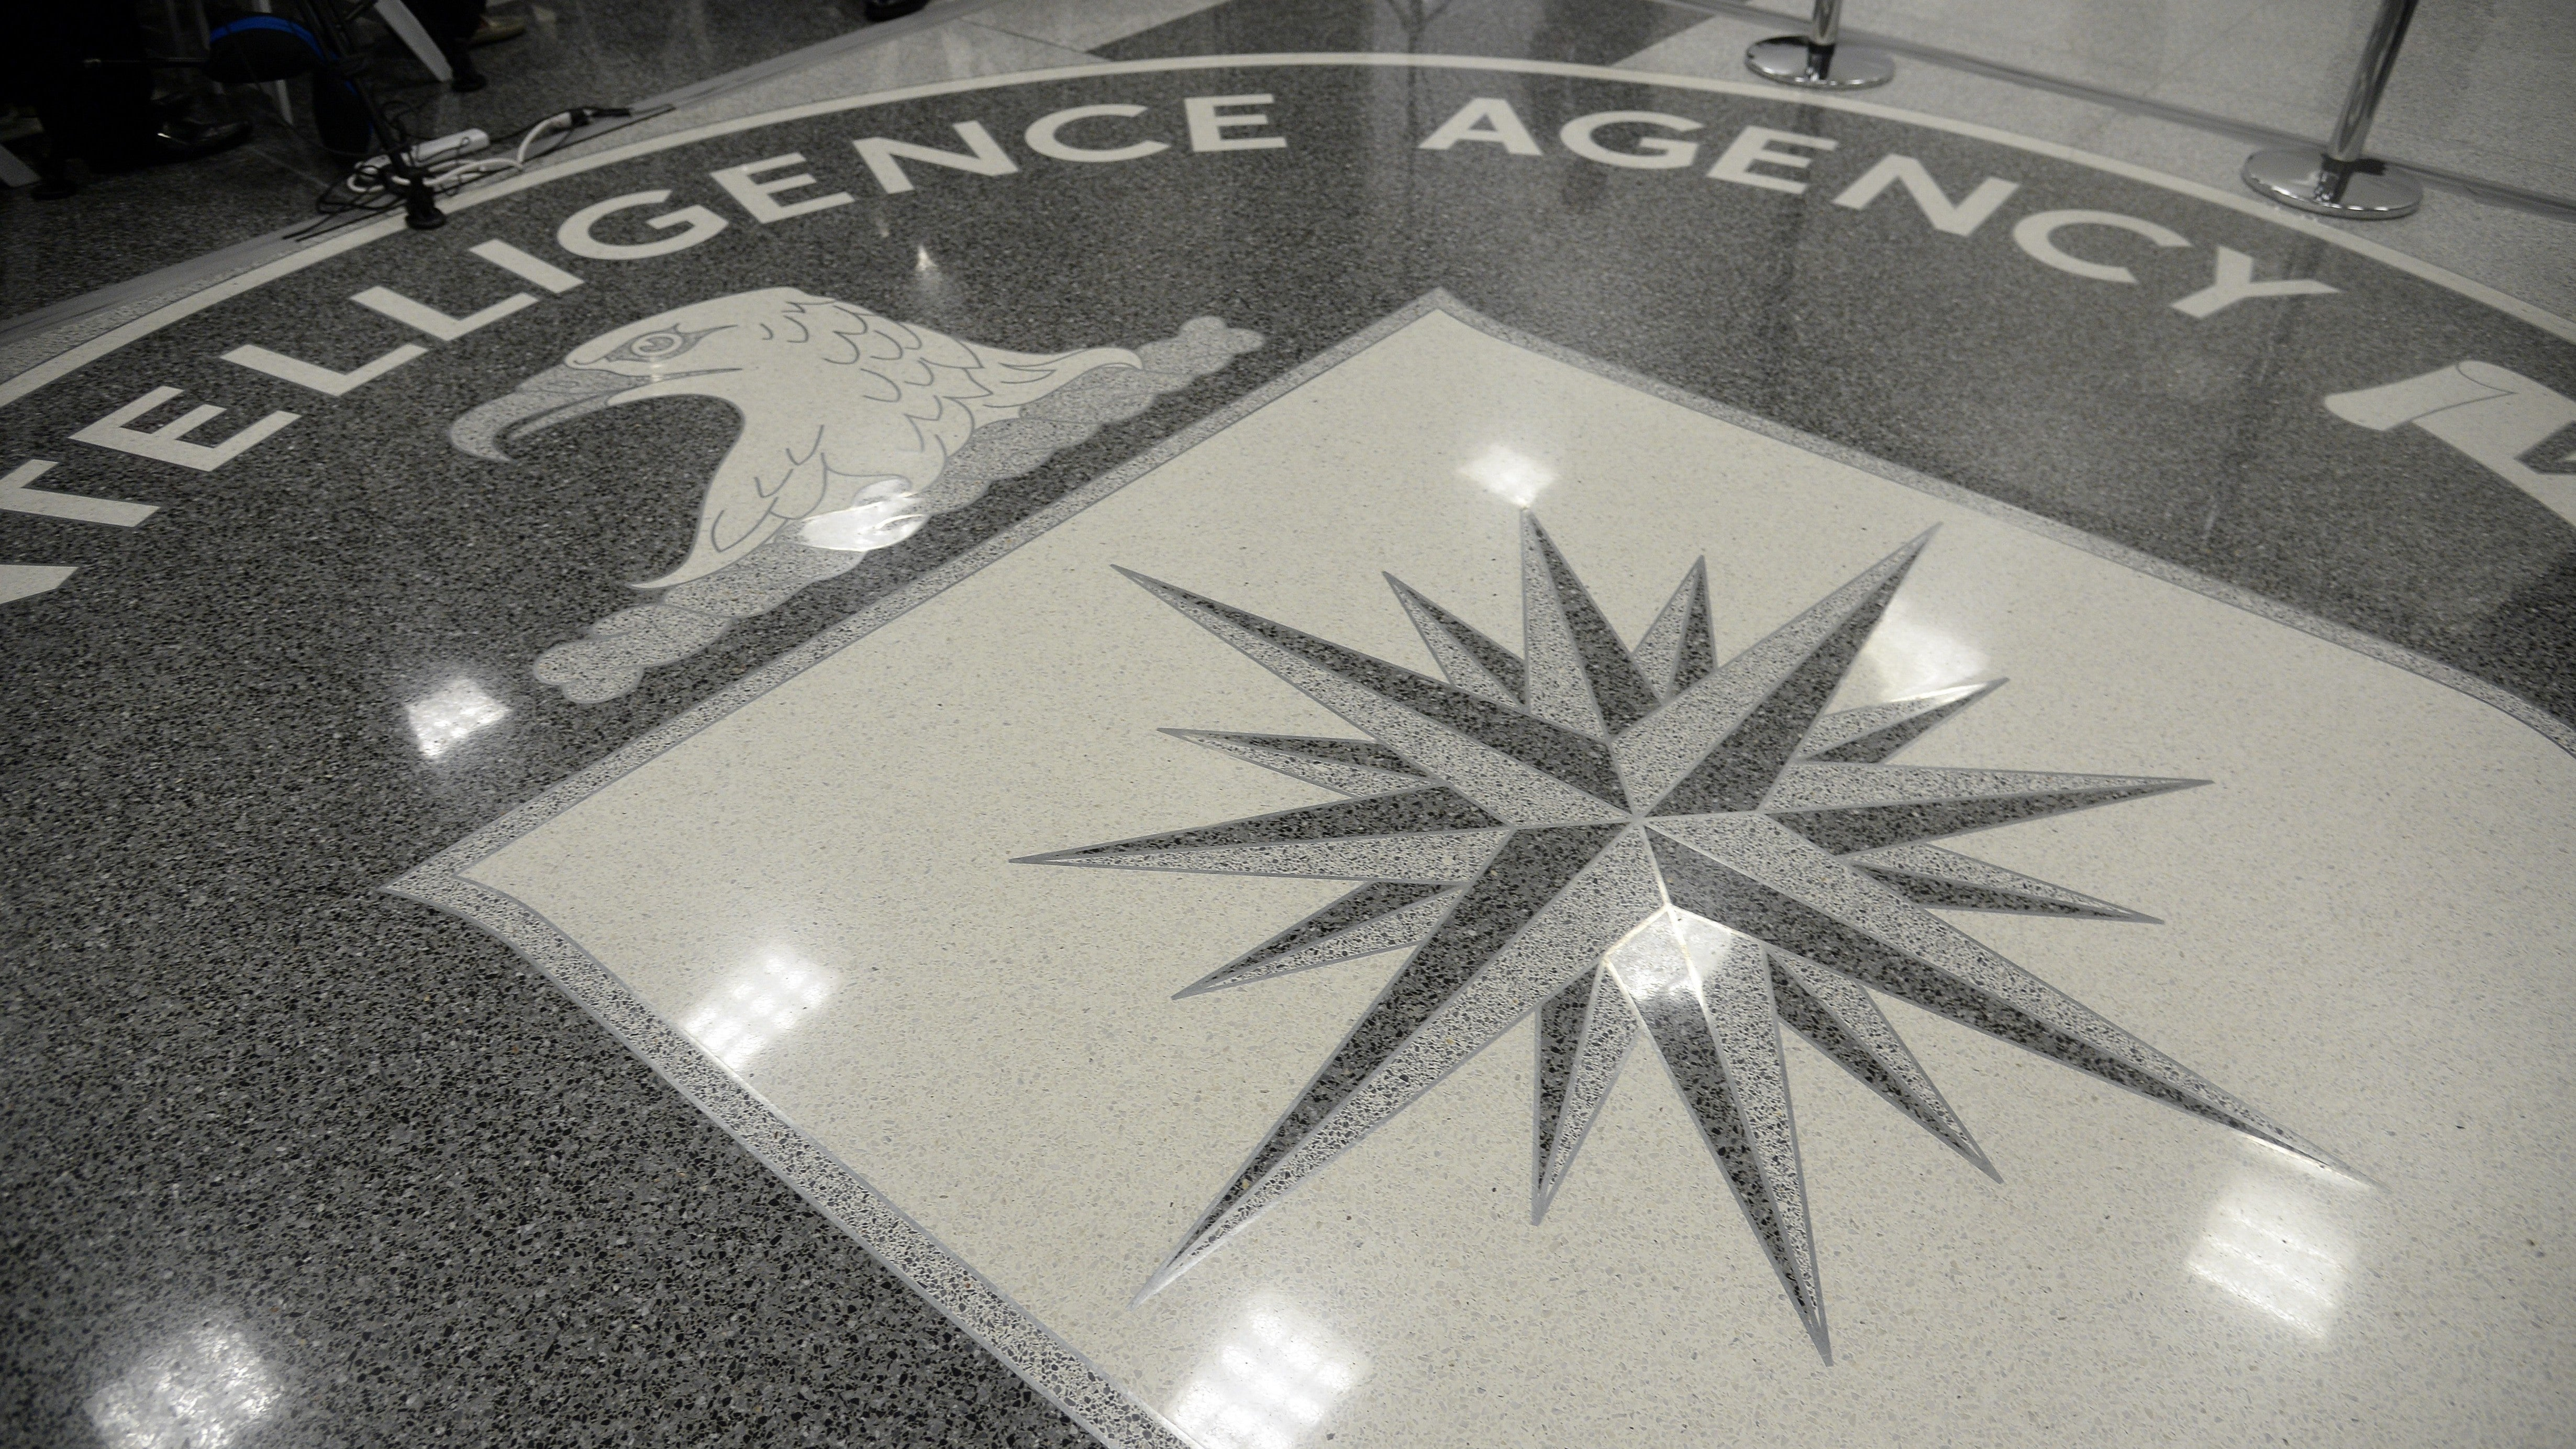 Jury Deadlocked In Case Of Accused WikiLeaks Source Charged For 'Vault 7' CIA Leaks